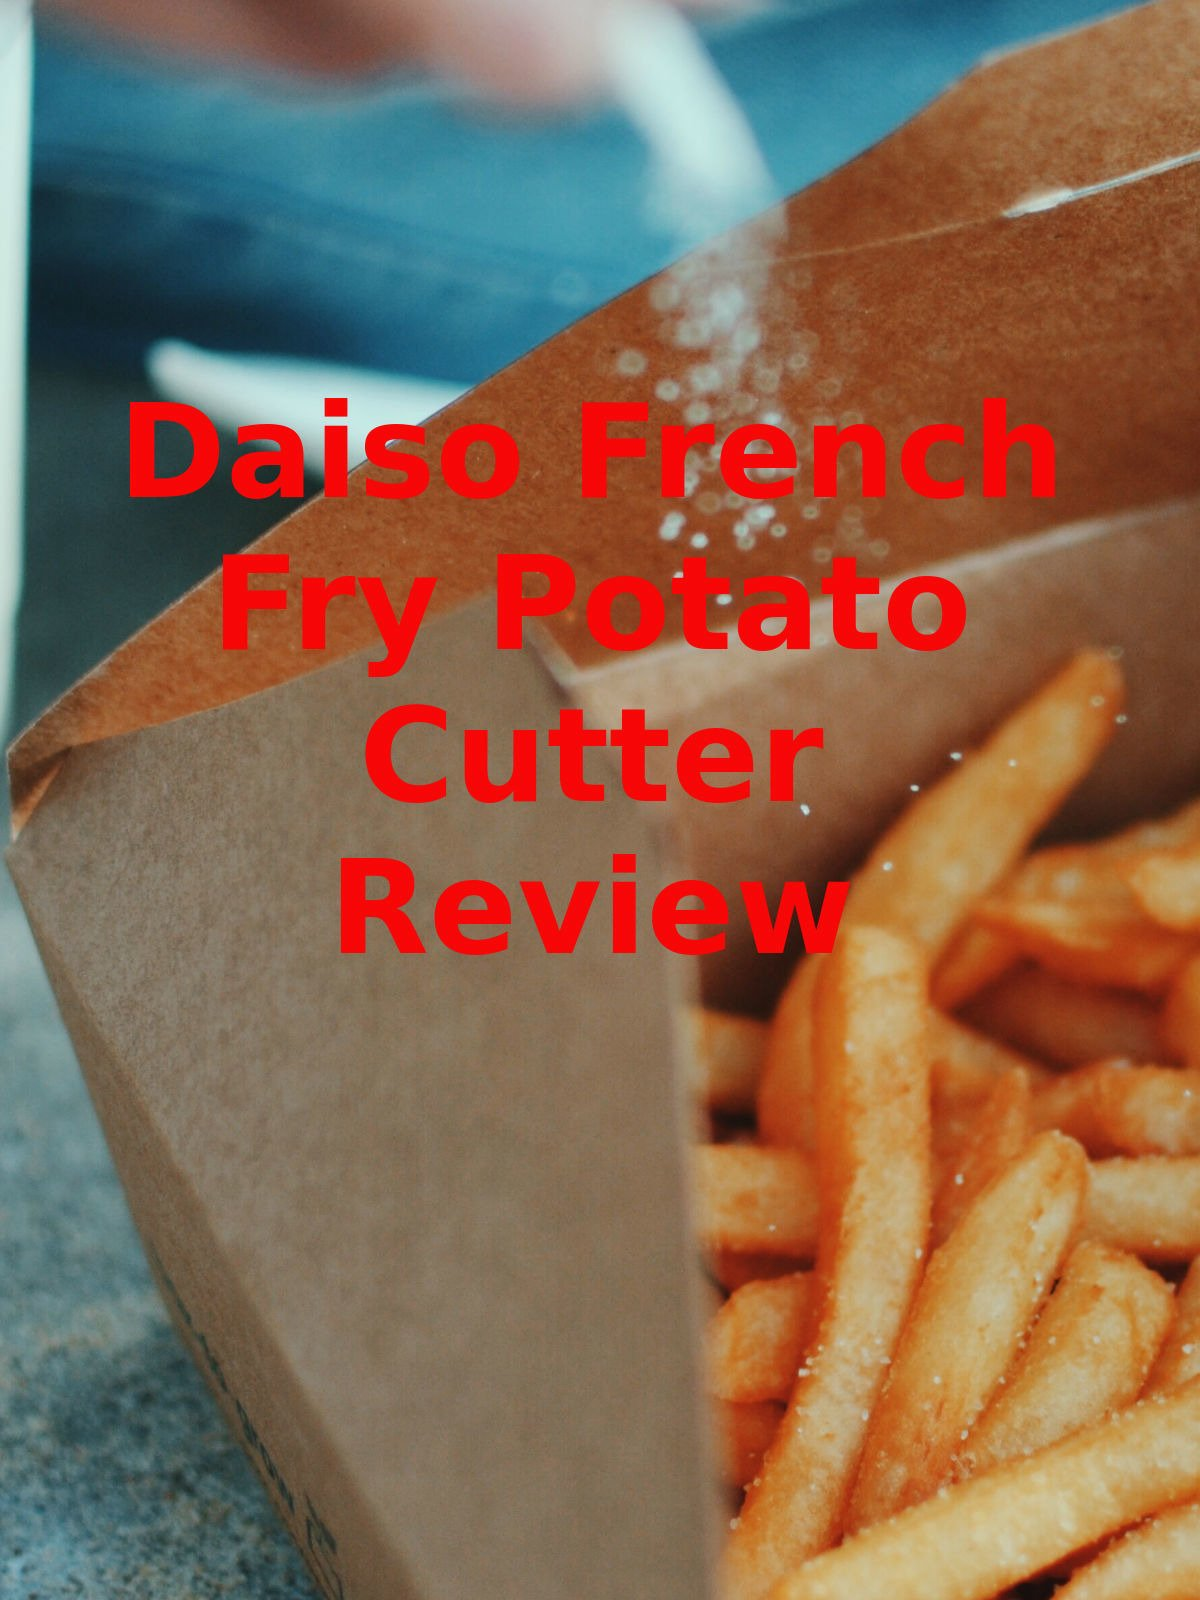 Review: Daiso French Fry Potato Cutter Review